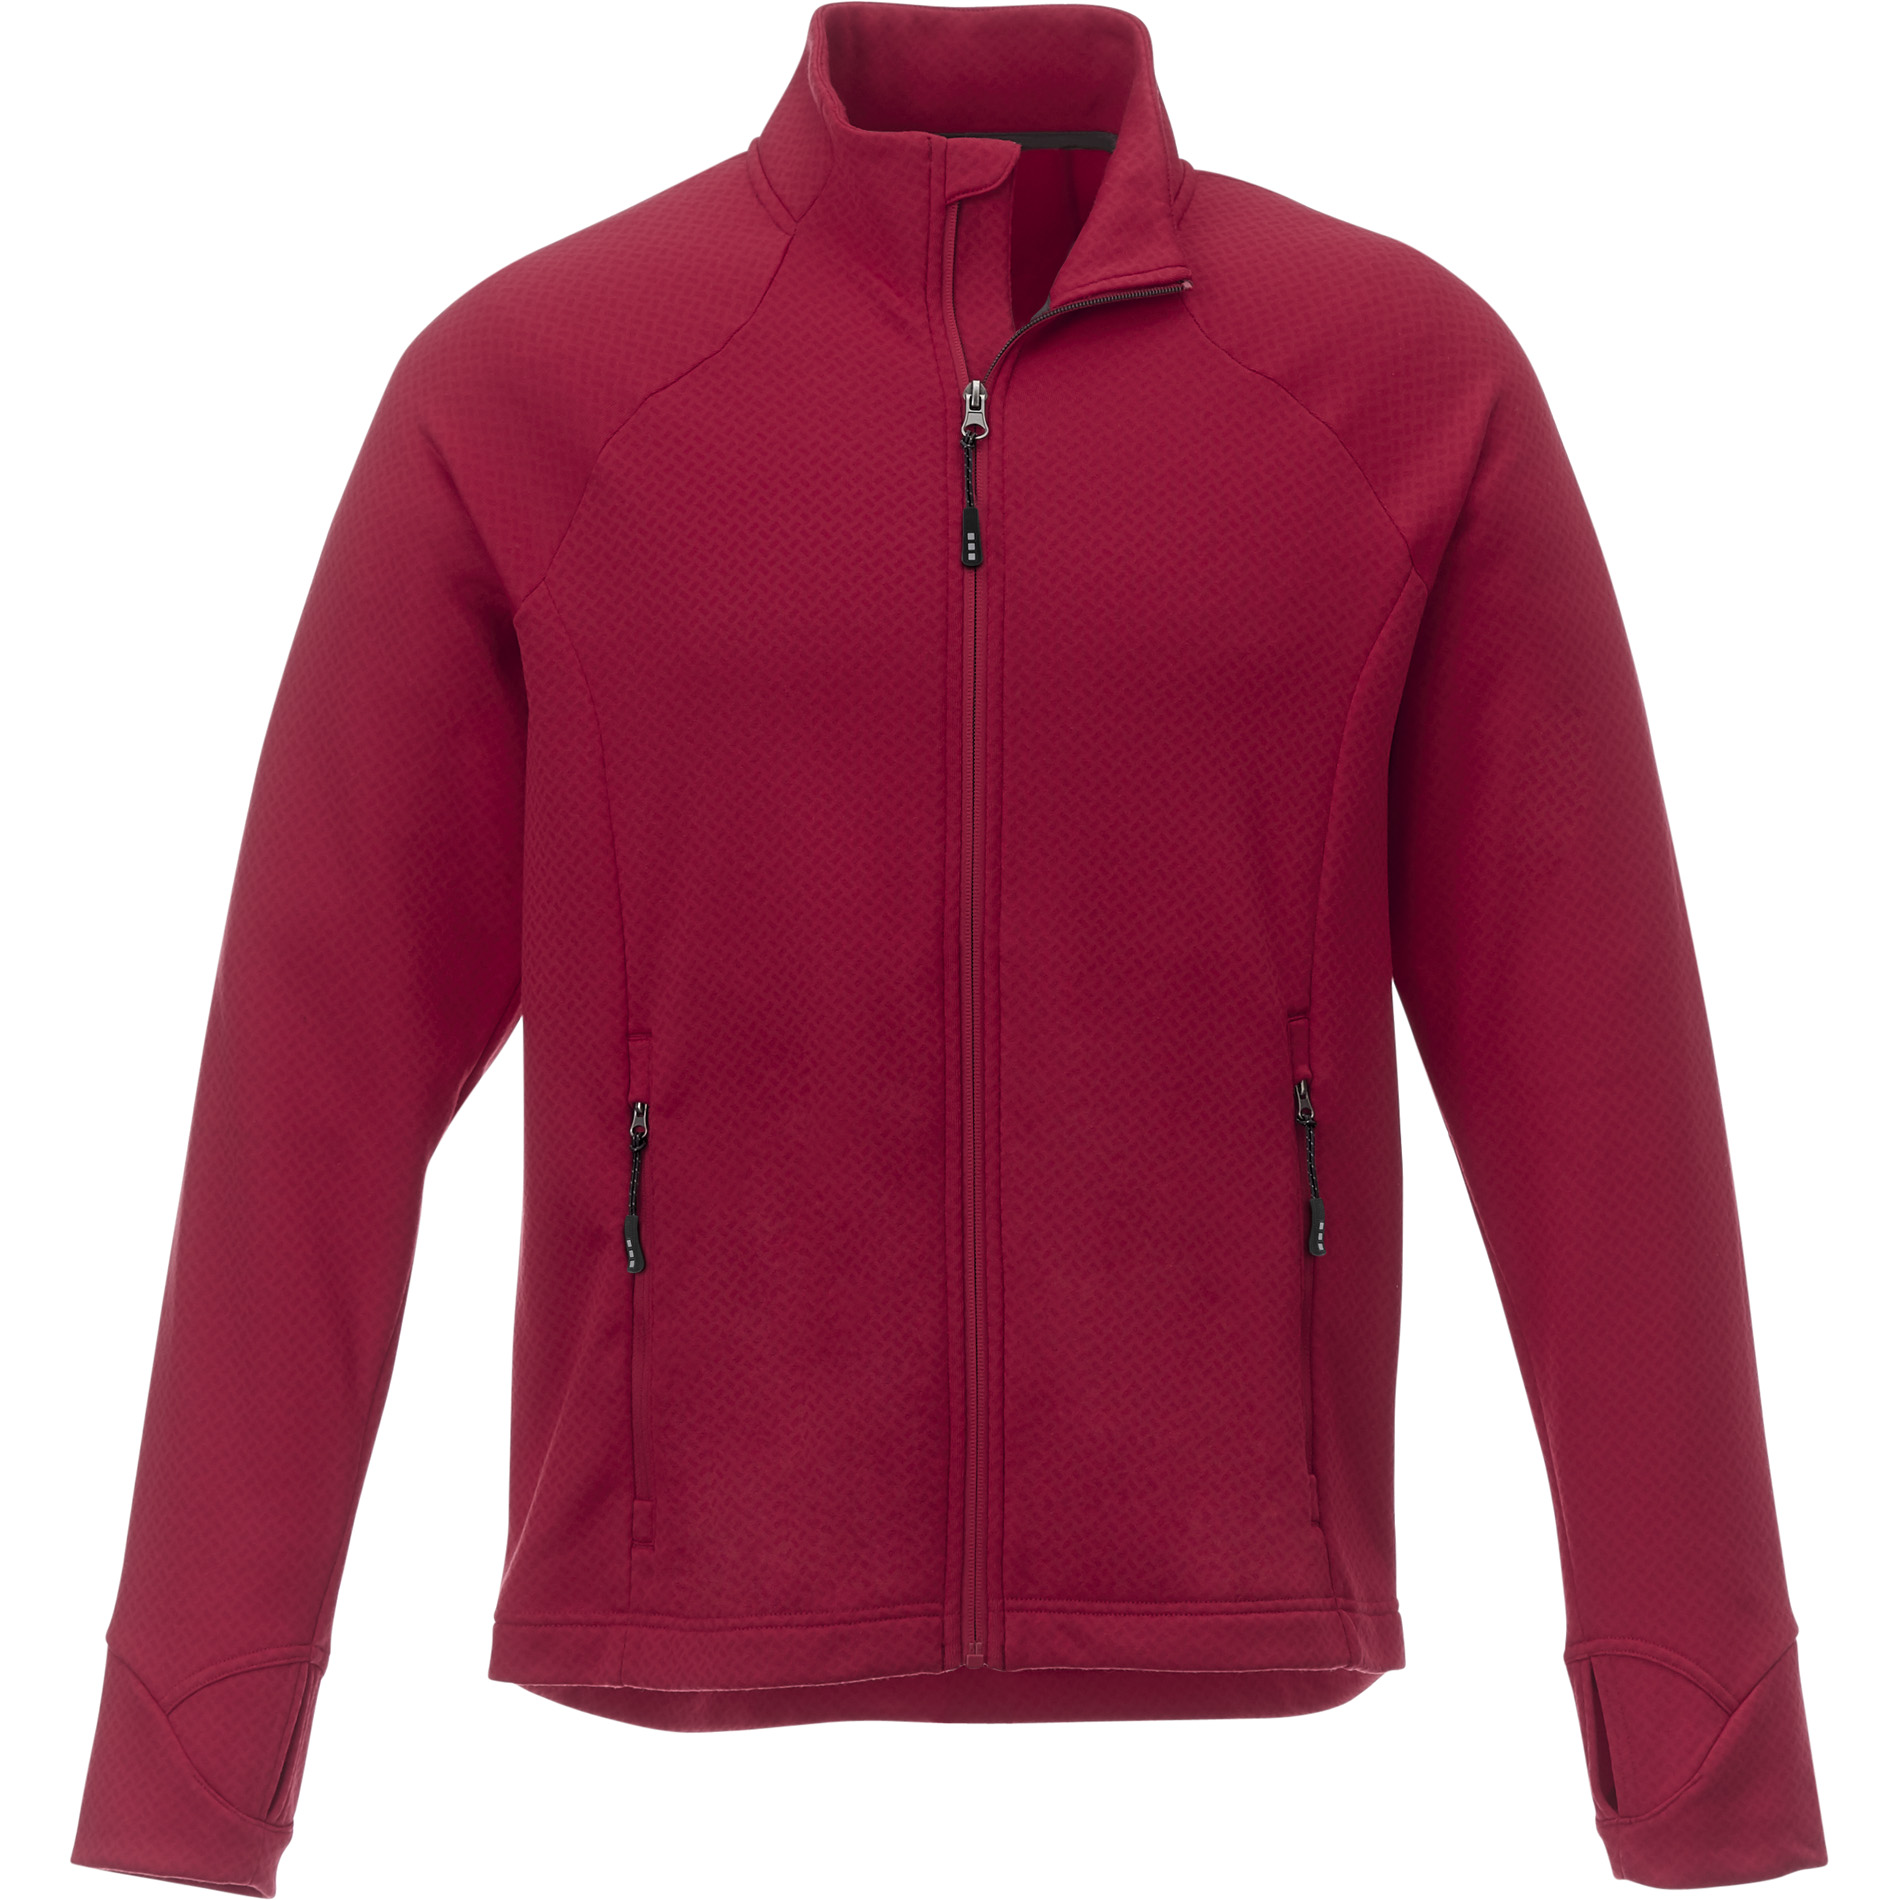 Elevate TM18136 - Men's KIRKWOOD Knit Jacket